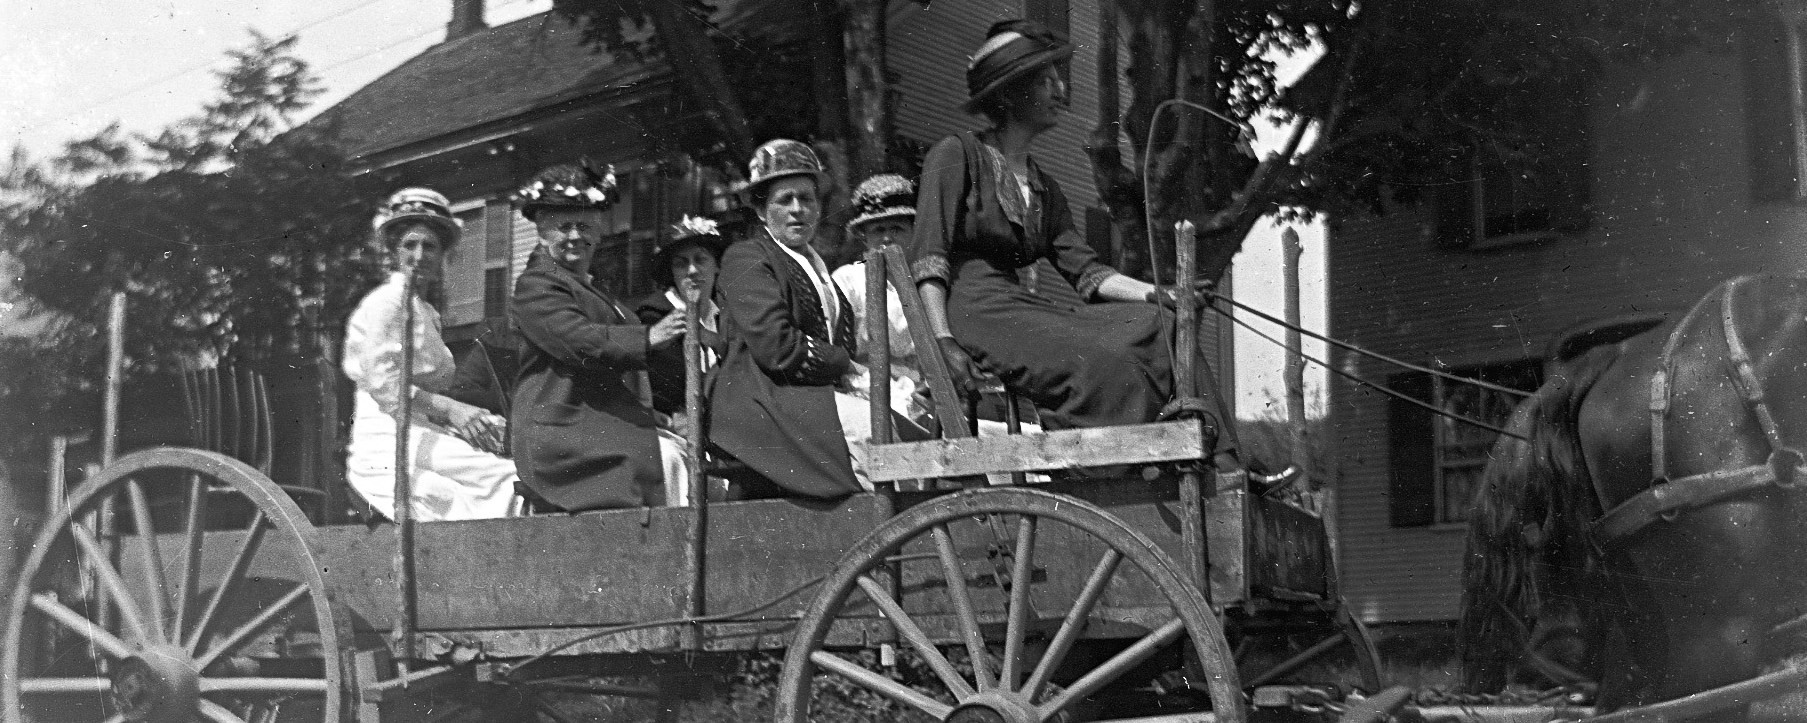 Photo of women in a wagon, George Swallow Photographer